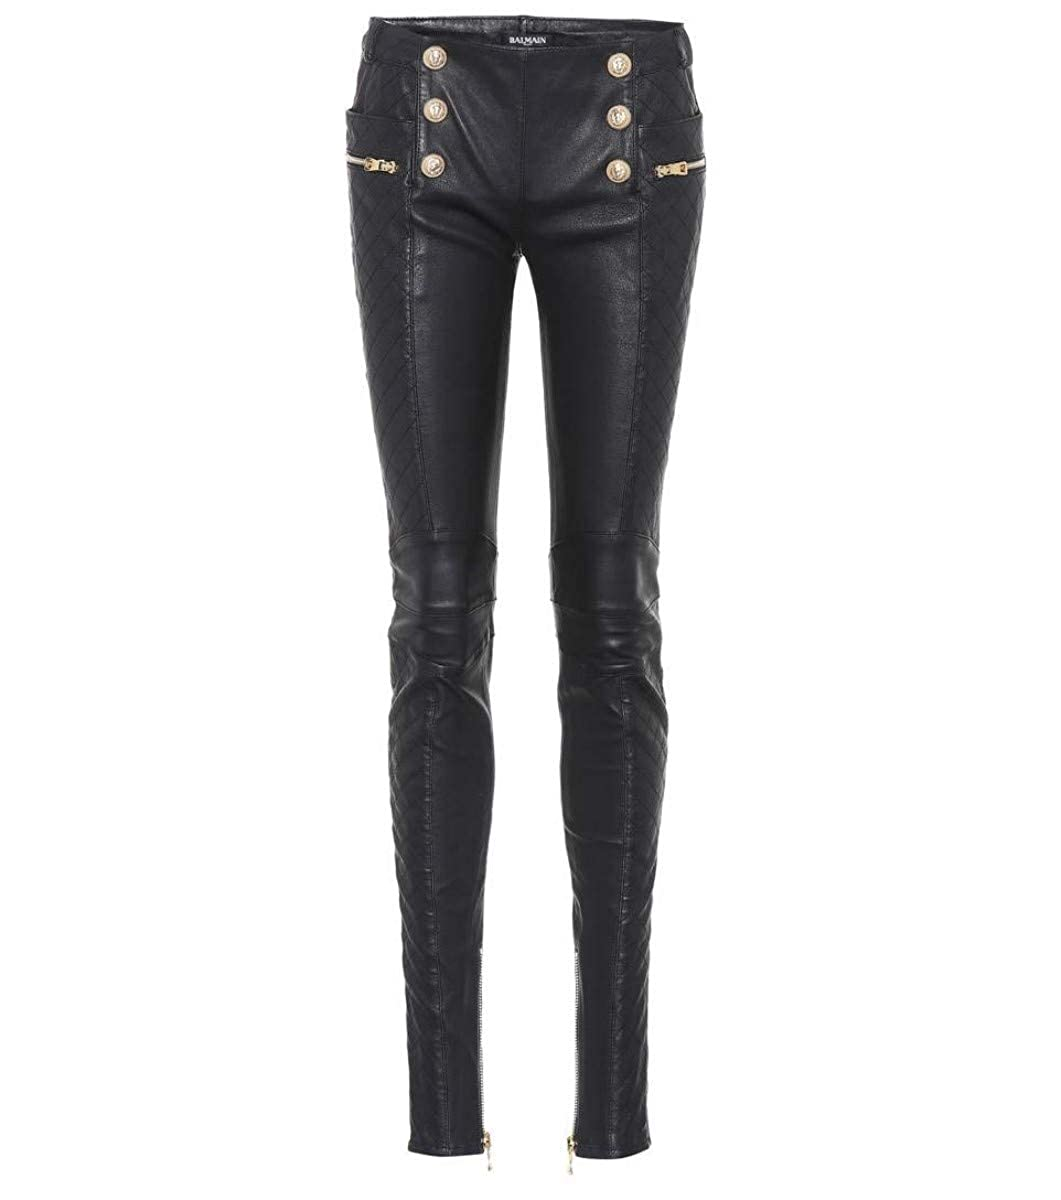 Women's Genuine Nappa Lambskin Leather Button Front Black Skinny Pants - DeluxeAdultCostumes.com